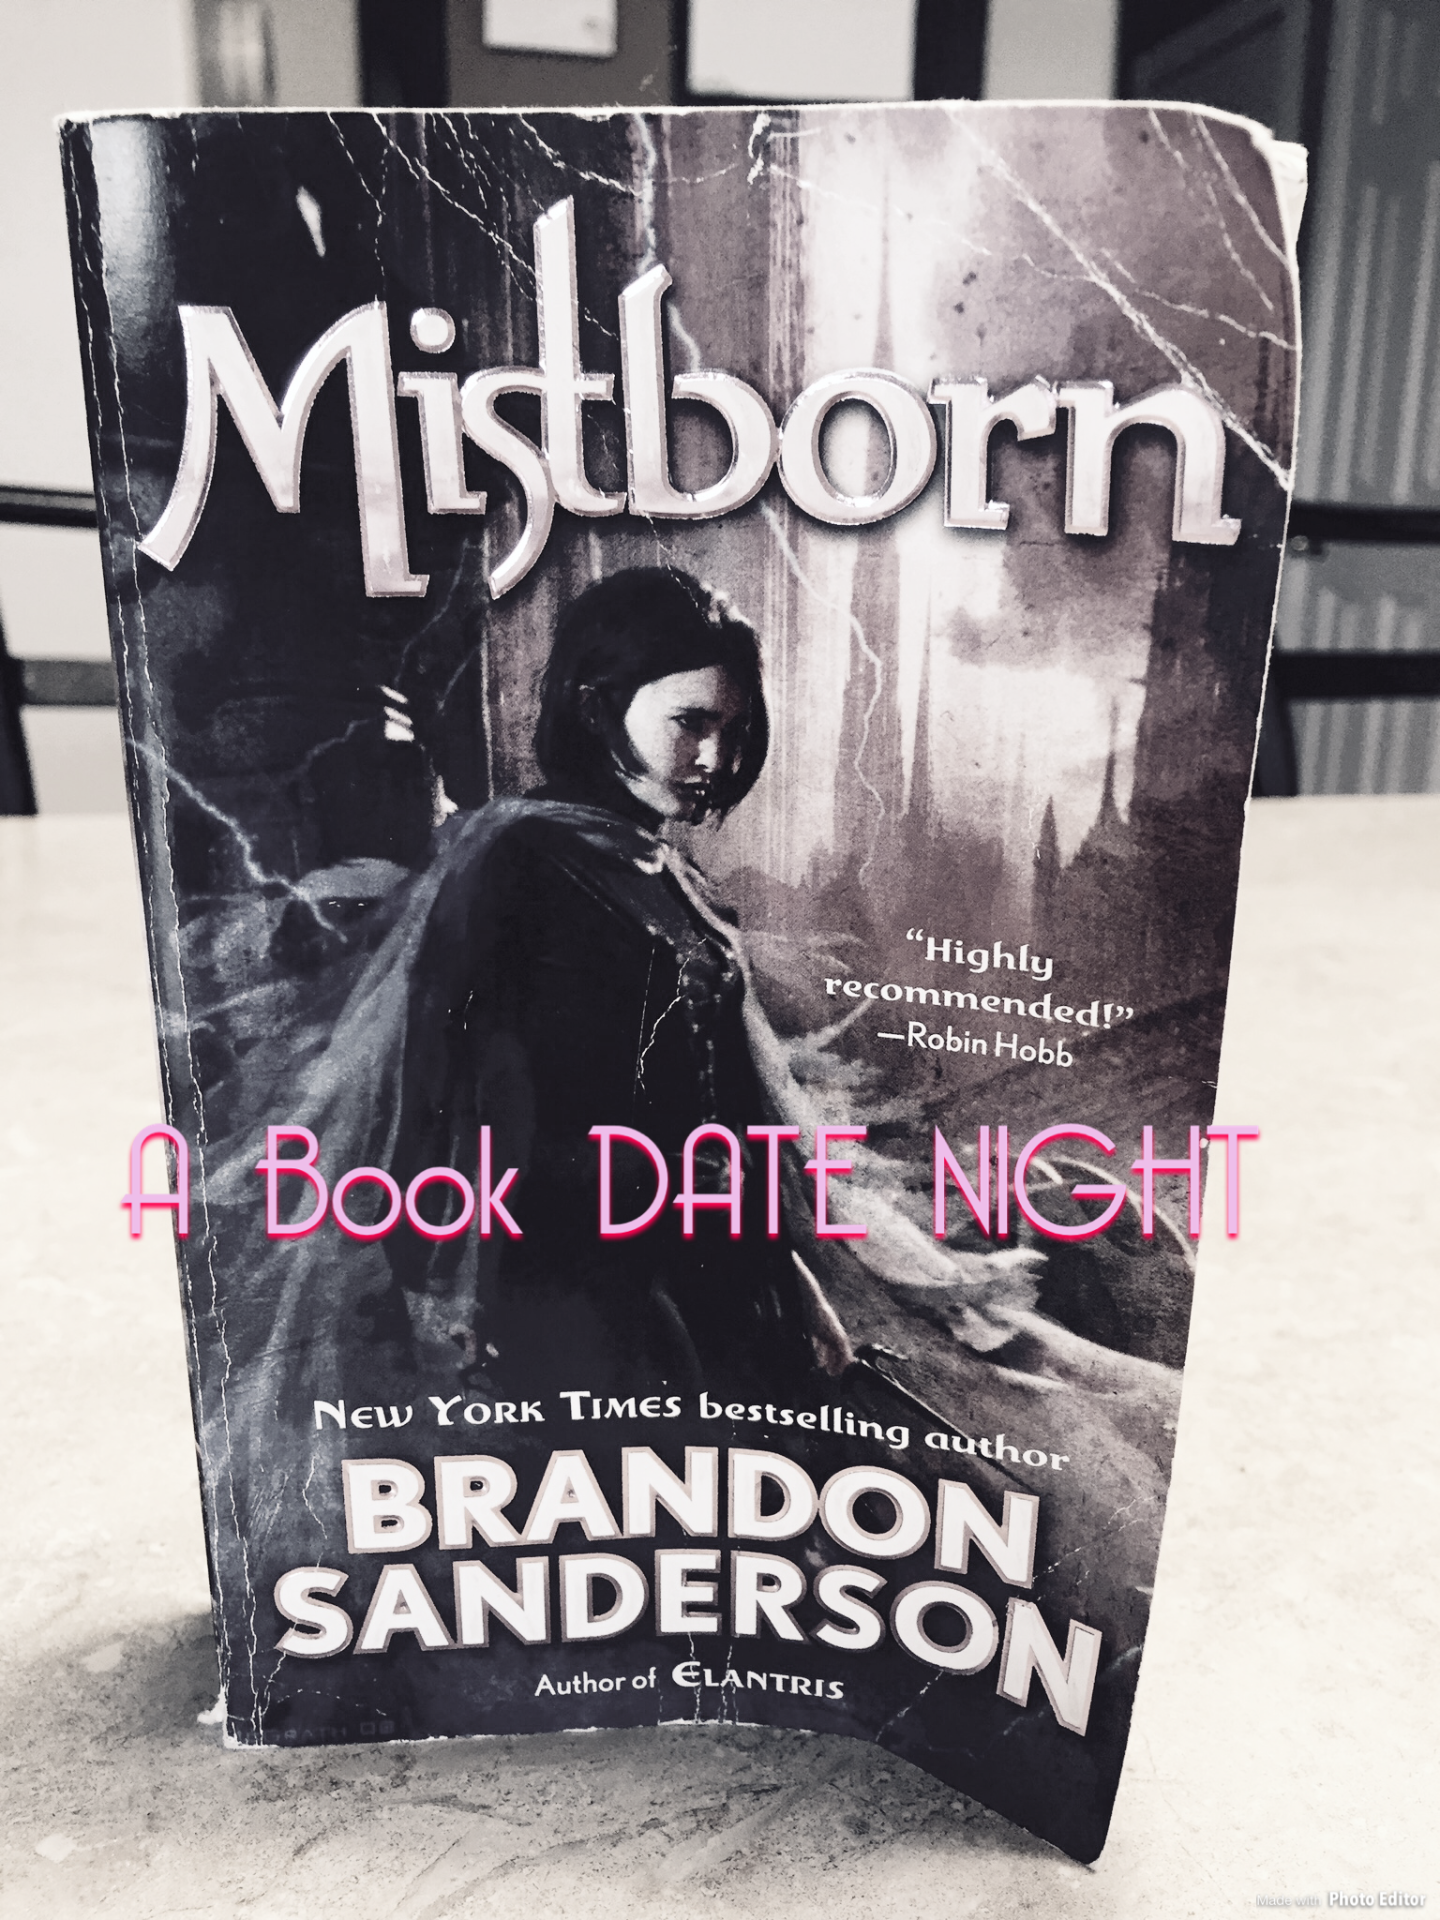 A Book Date Night??